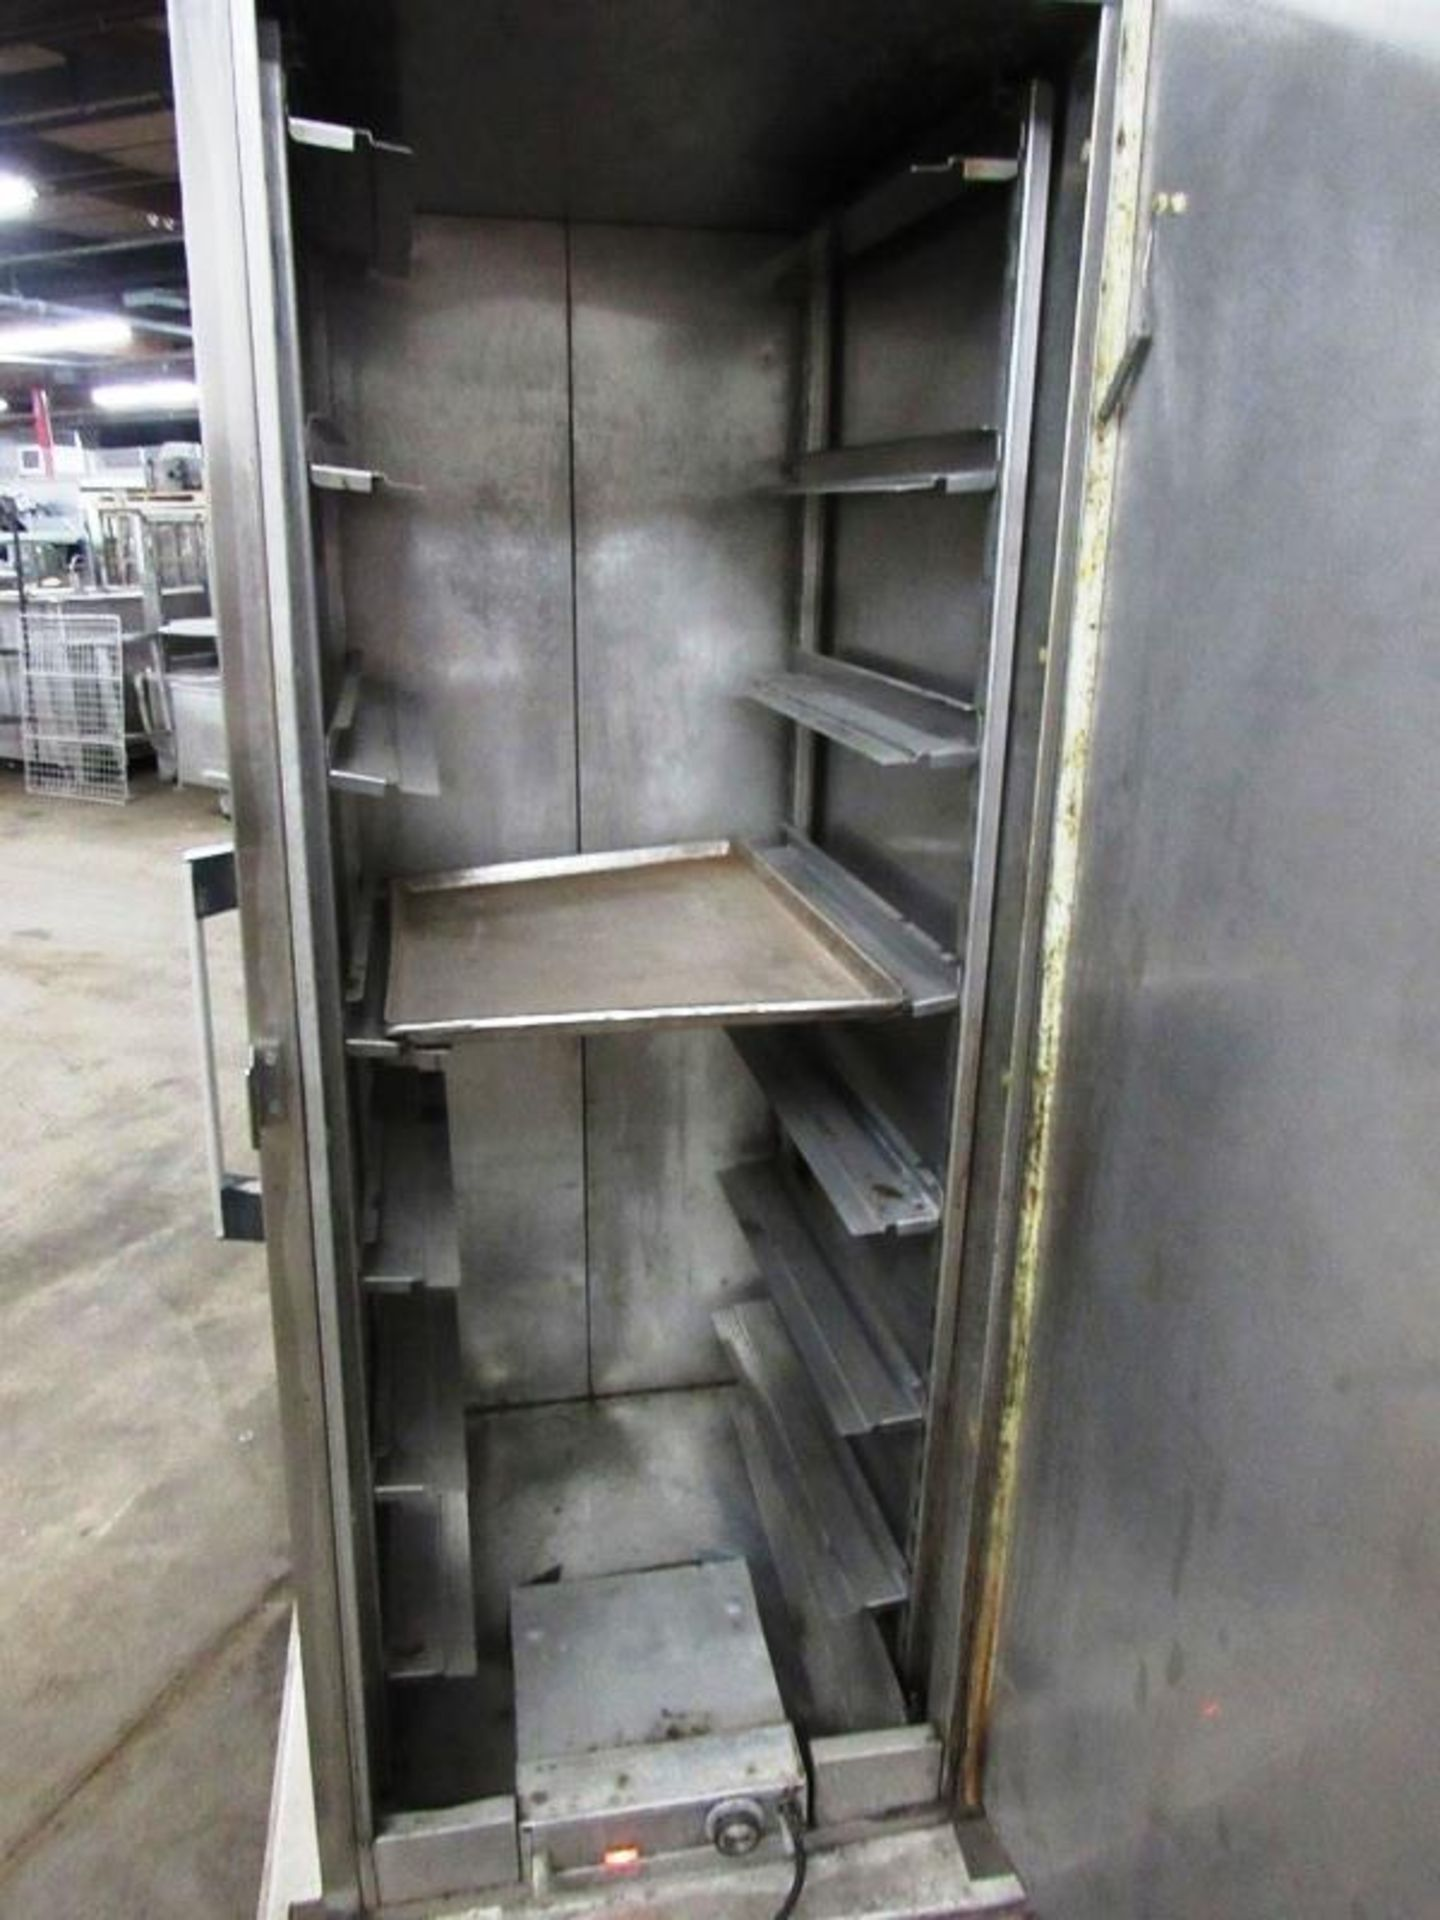 """Carter-Hoffman Mdl. FR-50 Portable Proofing Cabinet for 18"""" X 26"""" trays, 7-spaces, tested, works - Image 3 of 5"""